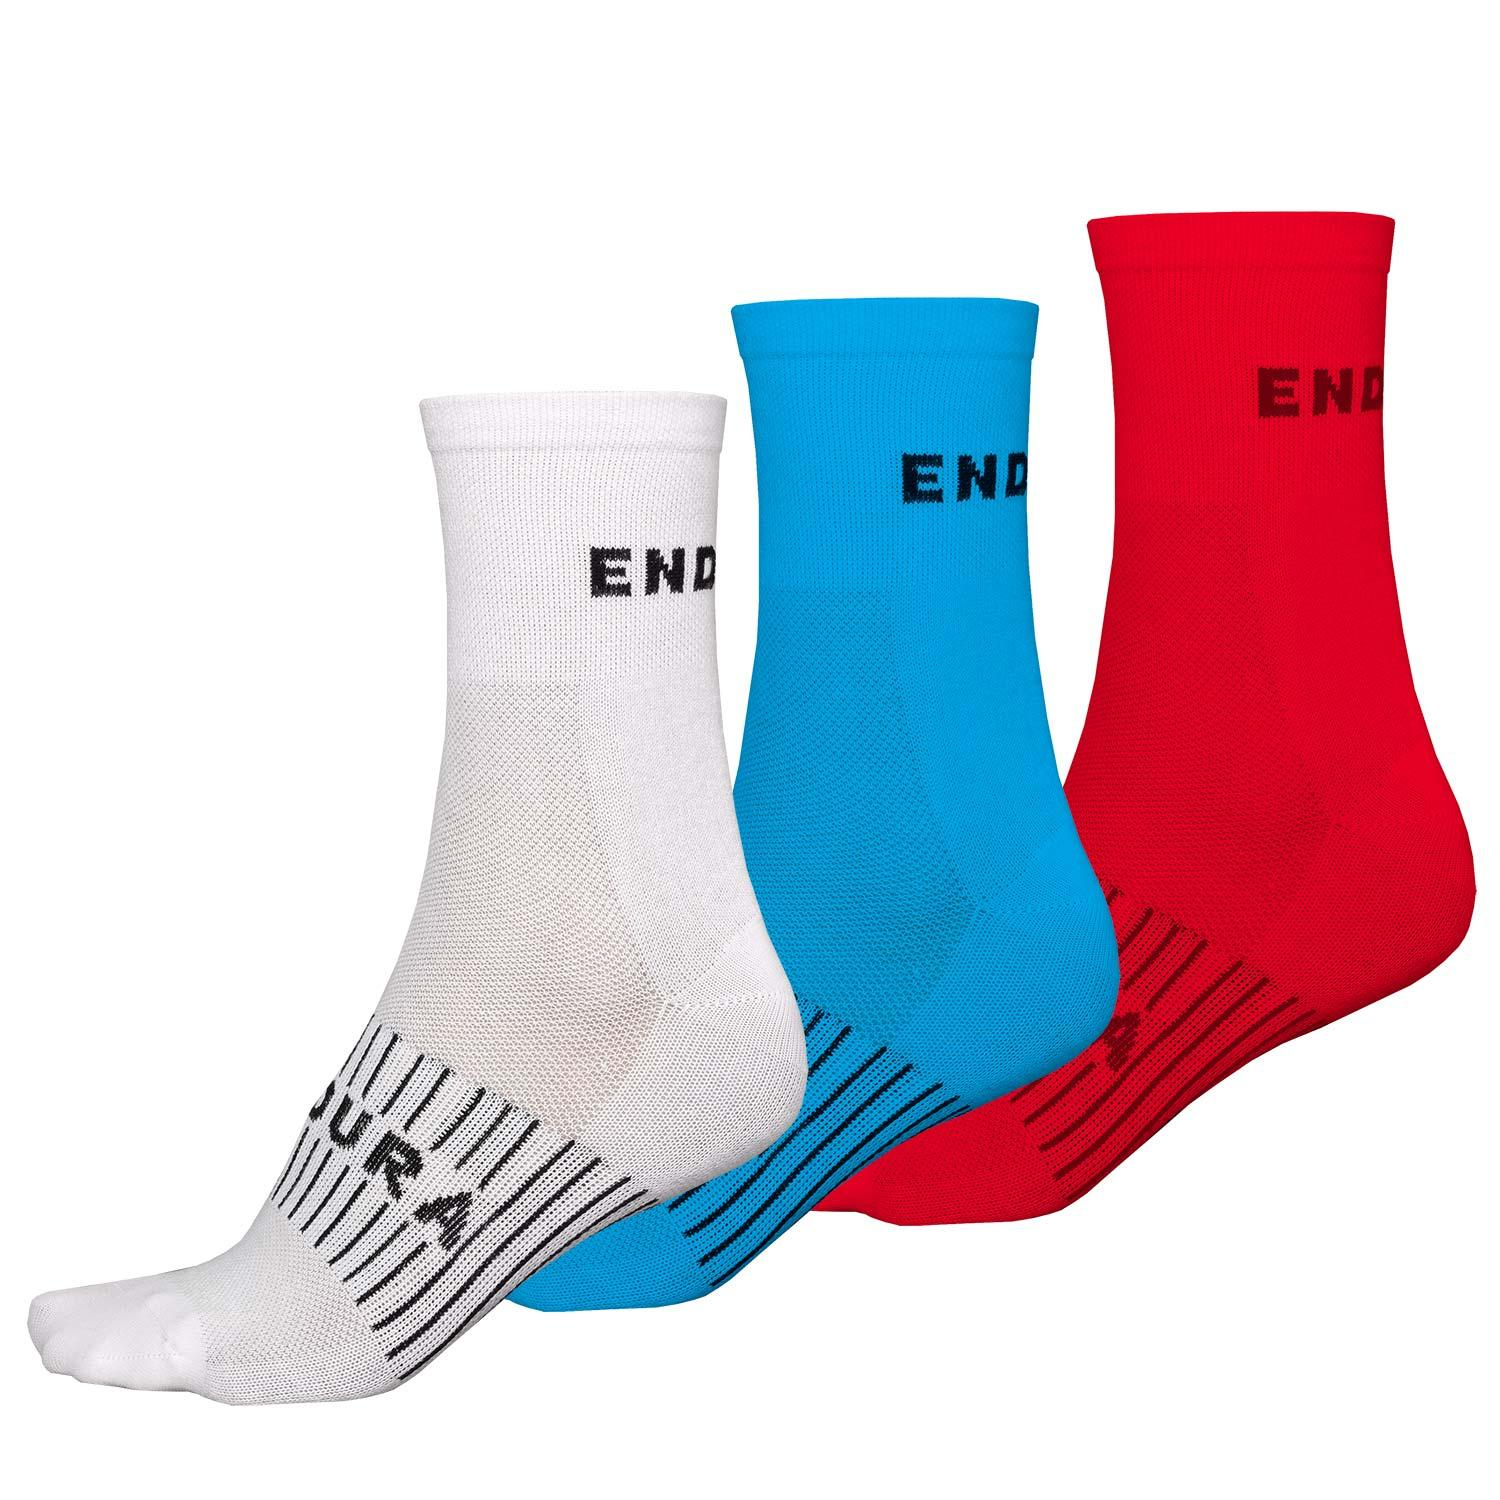 Endura Fietssokken zomer 3-pack Heren Wit + Blauw + Rood - Coolmax Race Sock (Triple Pack) White Blue Red